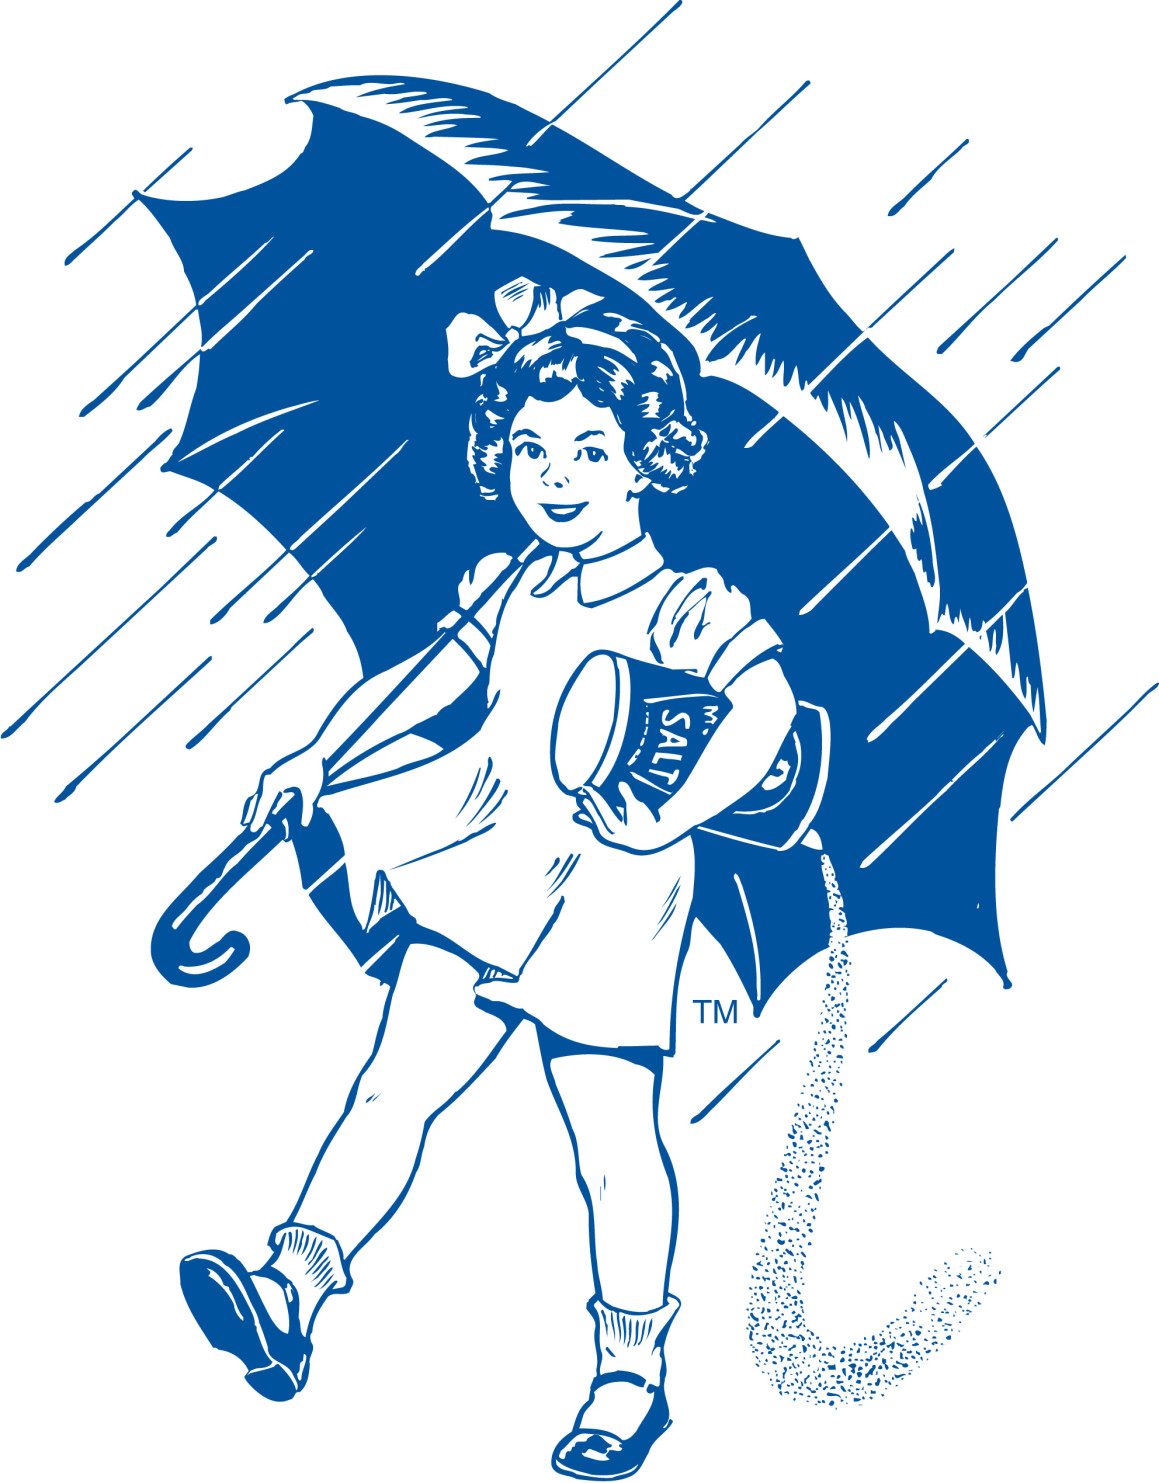 Seasons of Change - Morton Salt